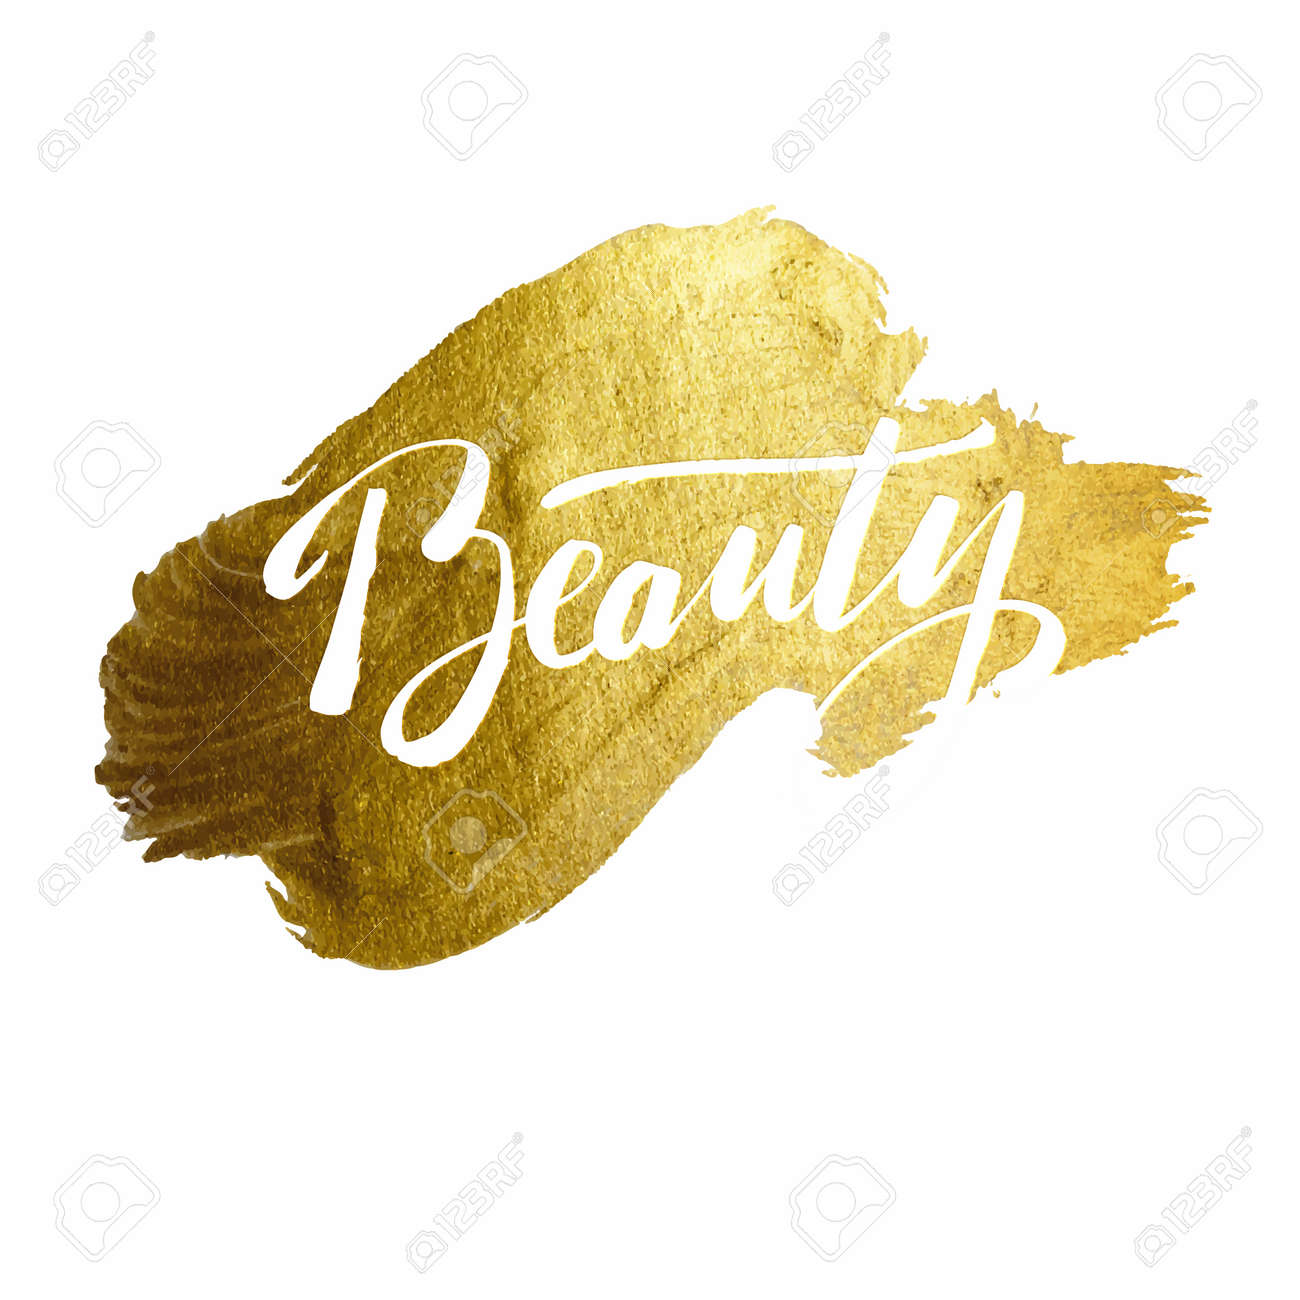 Pinselschrift Kalligraphie Auf Gold Background.Poster-Schablone ...